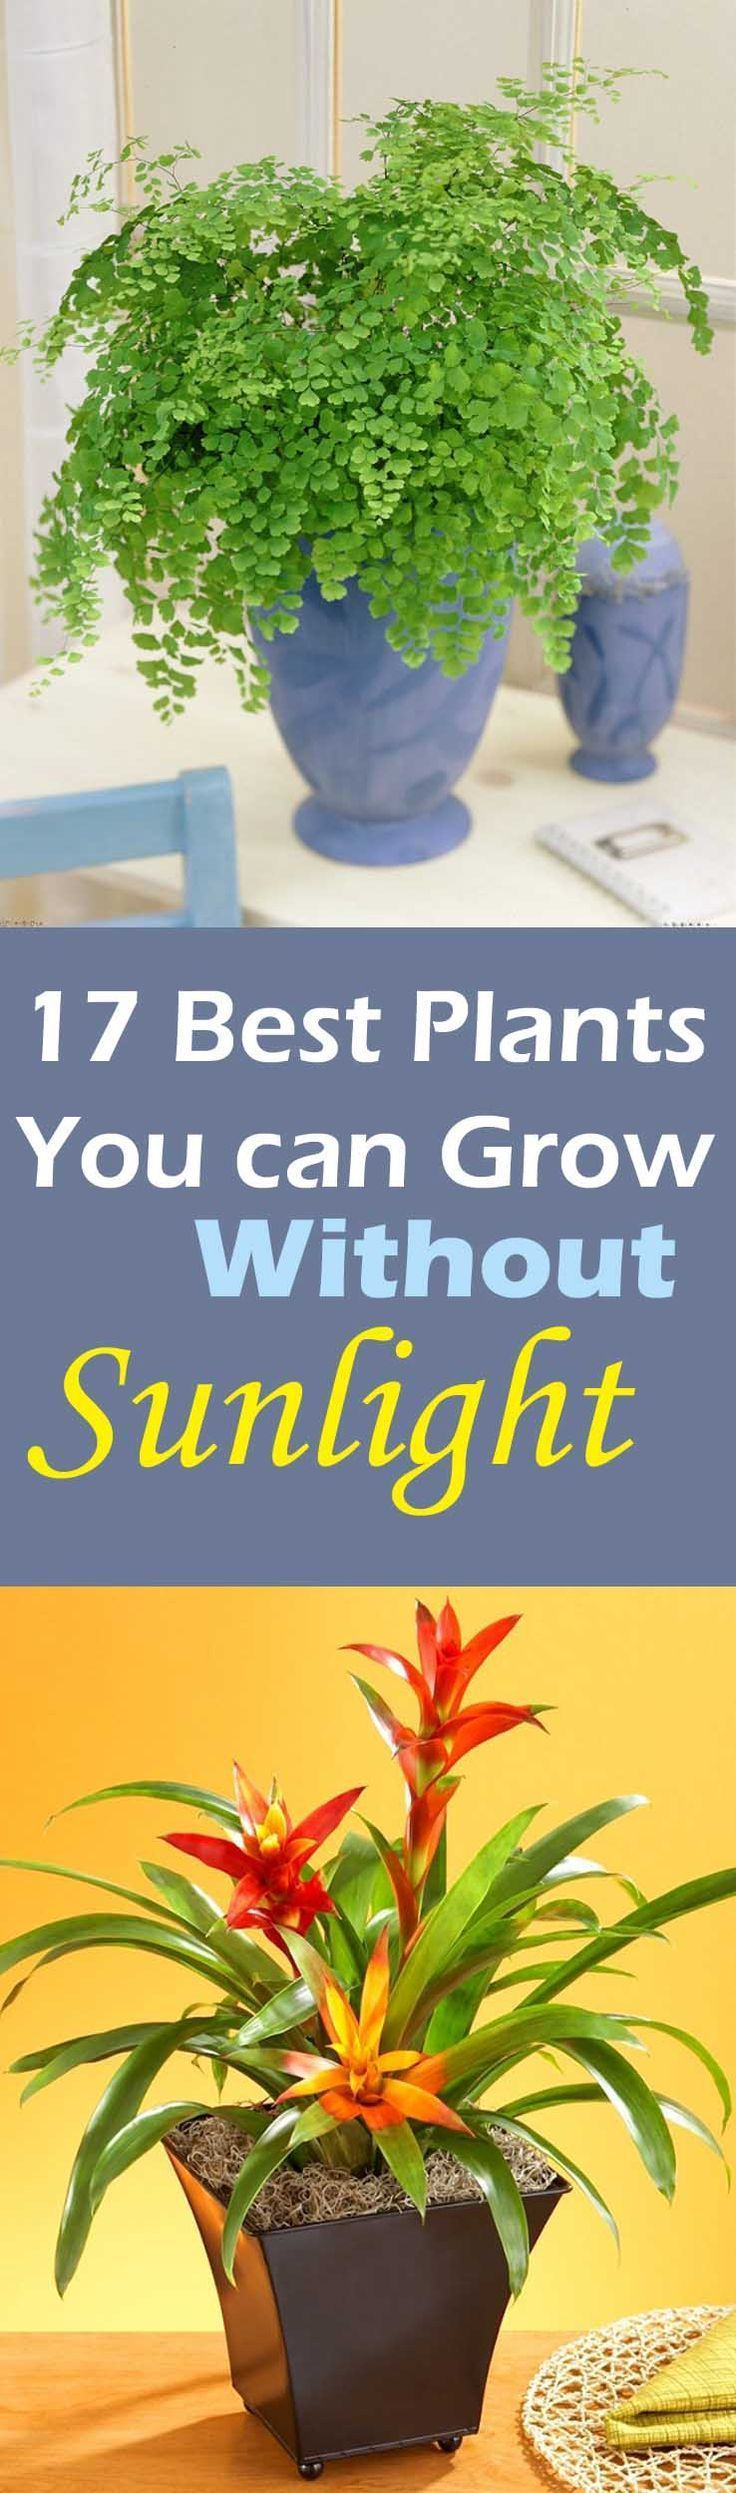 There are low light plants that grow without sunlight, they need indirect exposure, some even thrive in fluorescent light and here in this article we've listed 17 best plants to grow indoors.